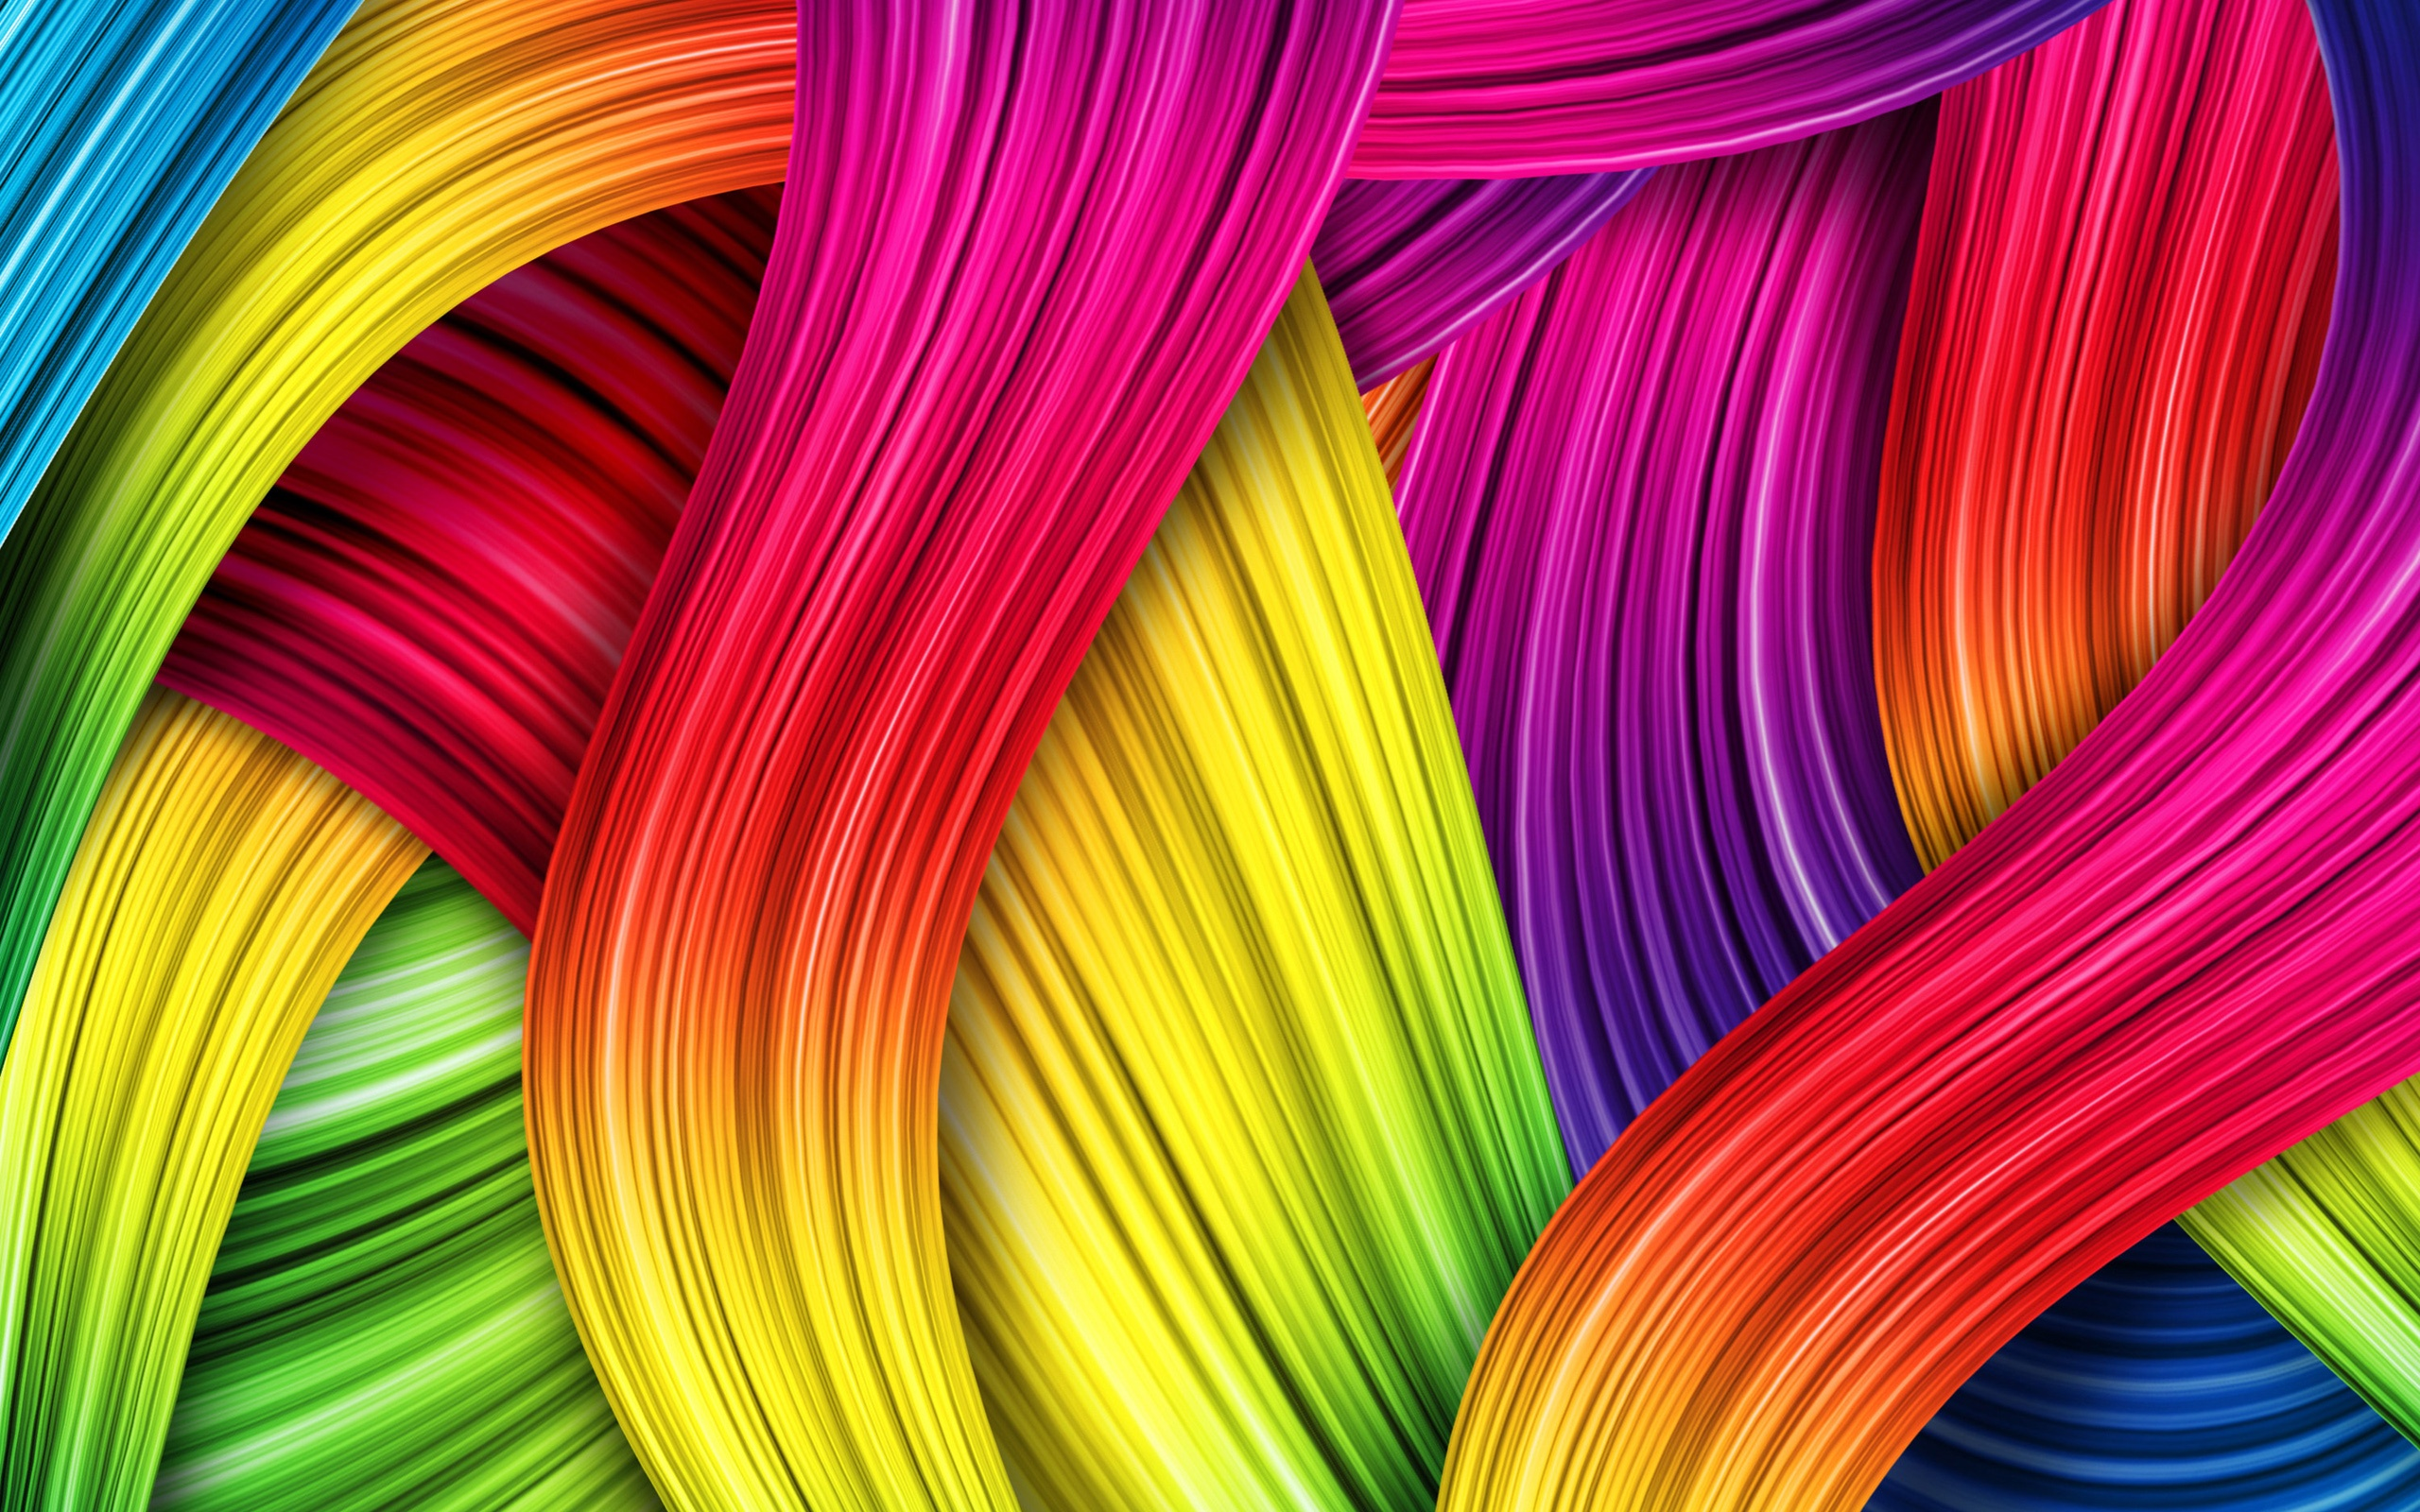 Colorful Lines Abstract Patterns HD Wallpapers 2560x1600